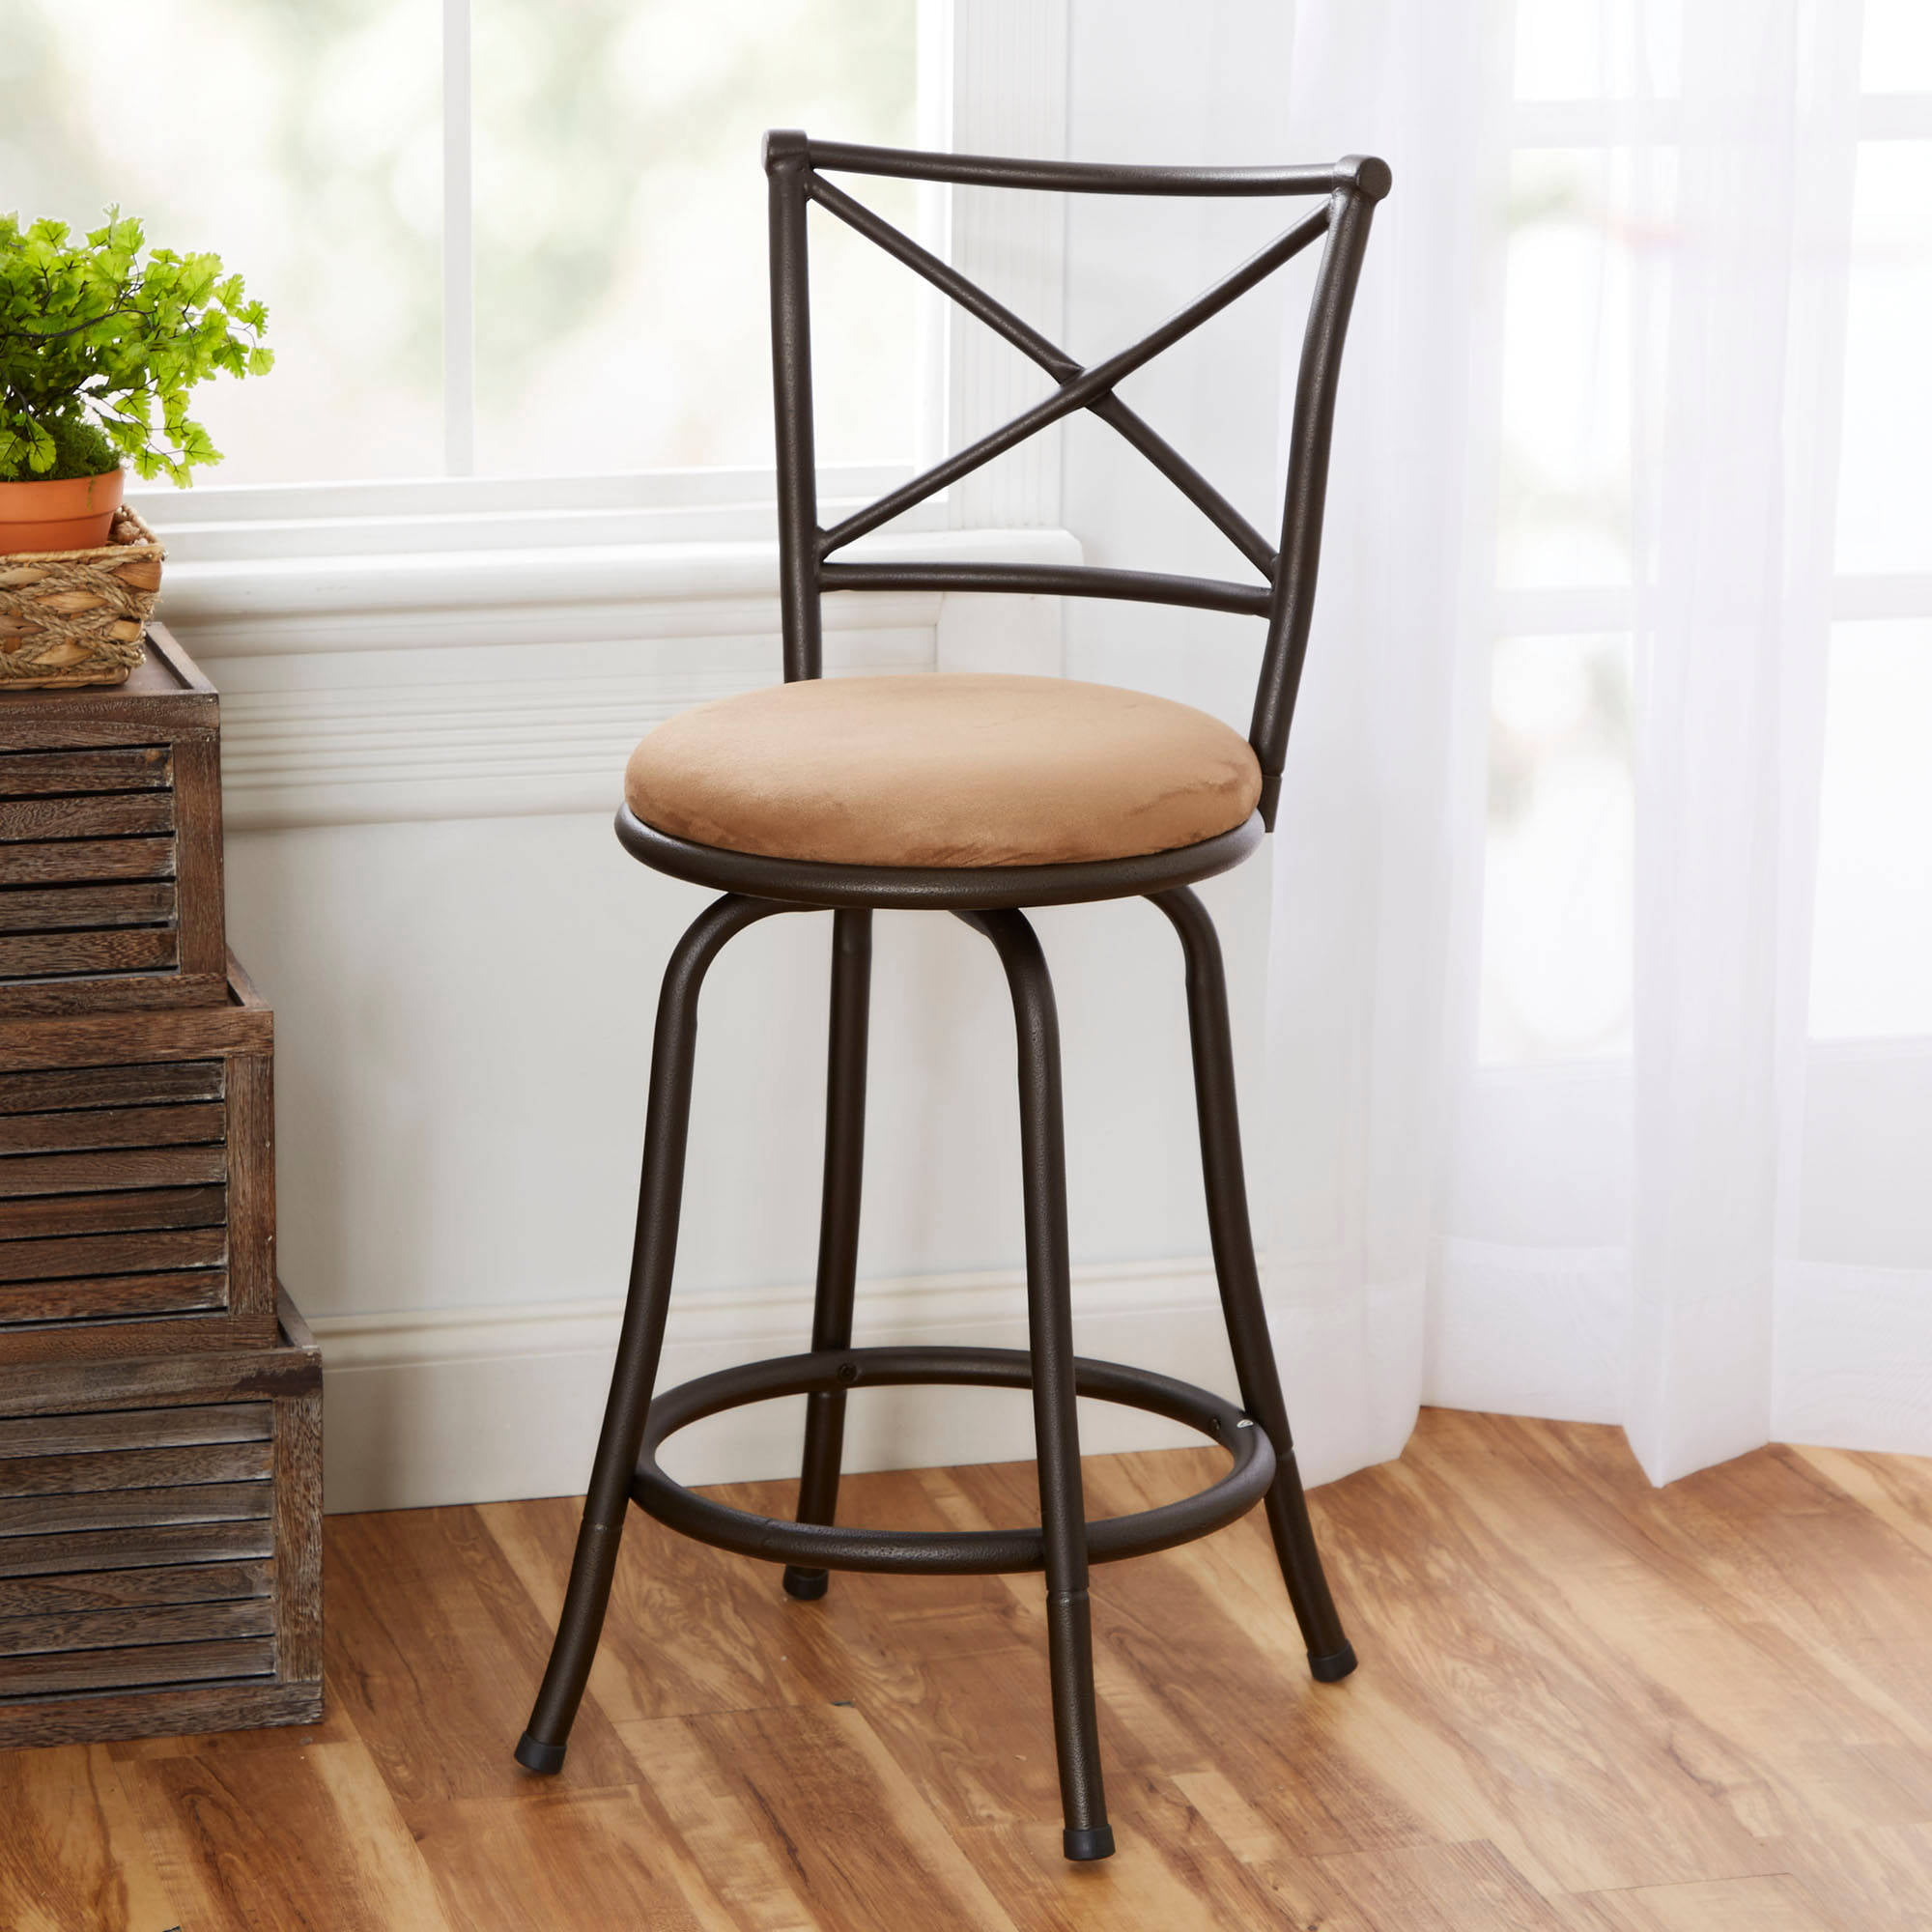 Mainstays 24  Swivel X-Back Hammered Bronze Barstool Multiple Colors - Walmart.com & Mainstays 24